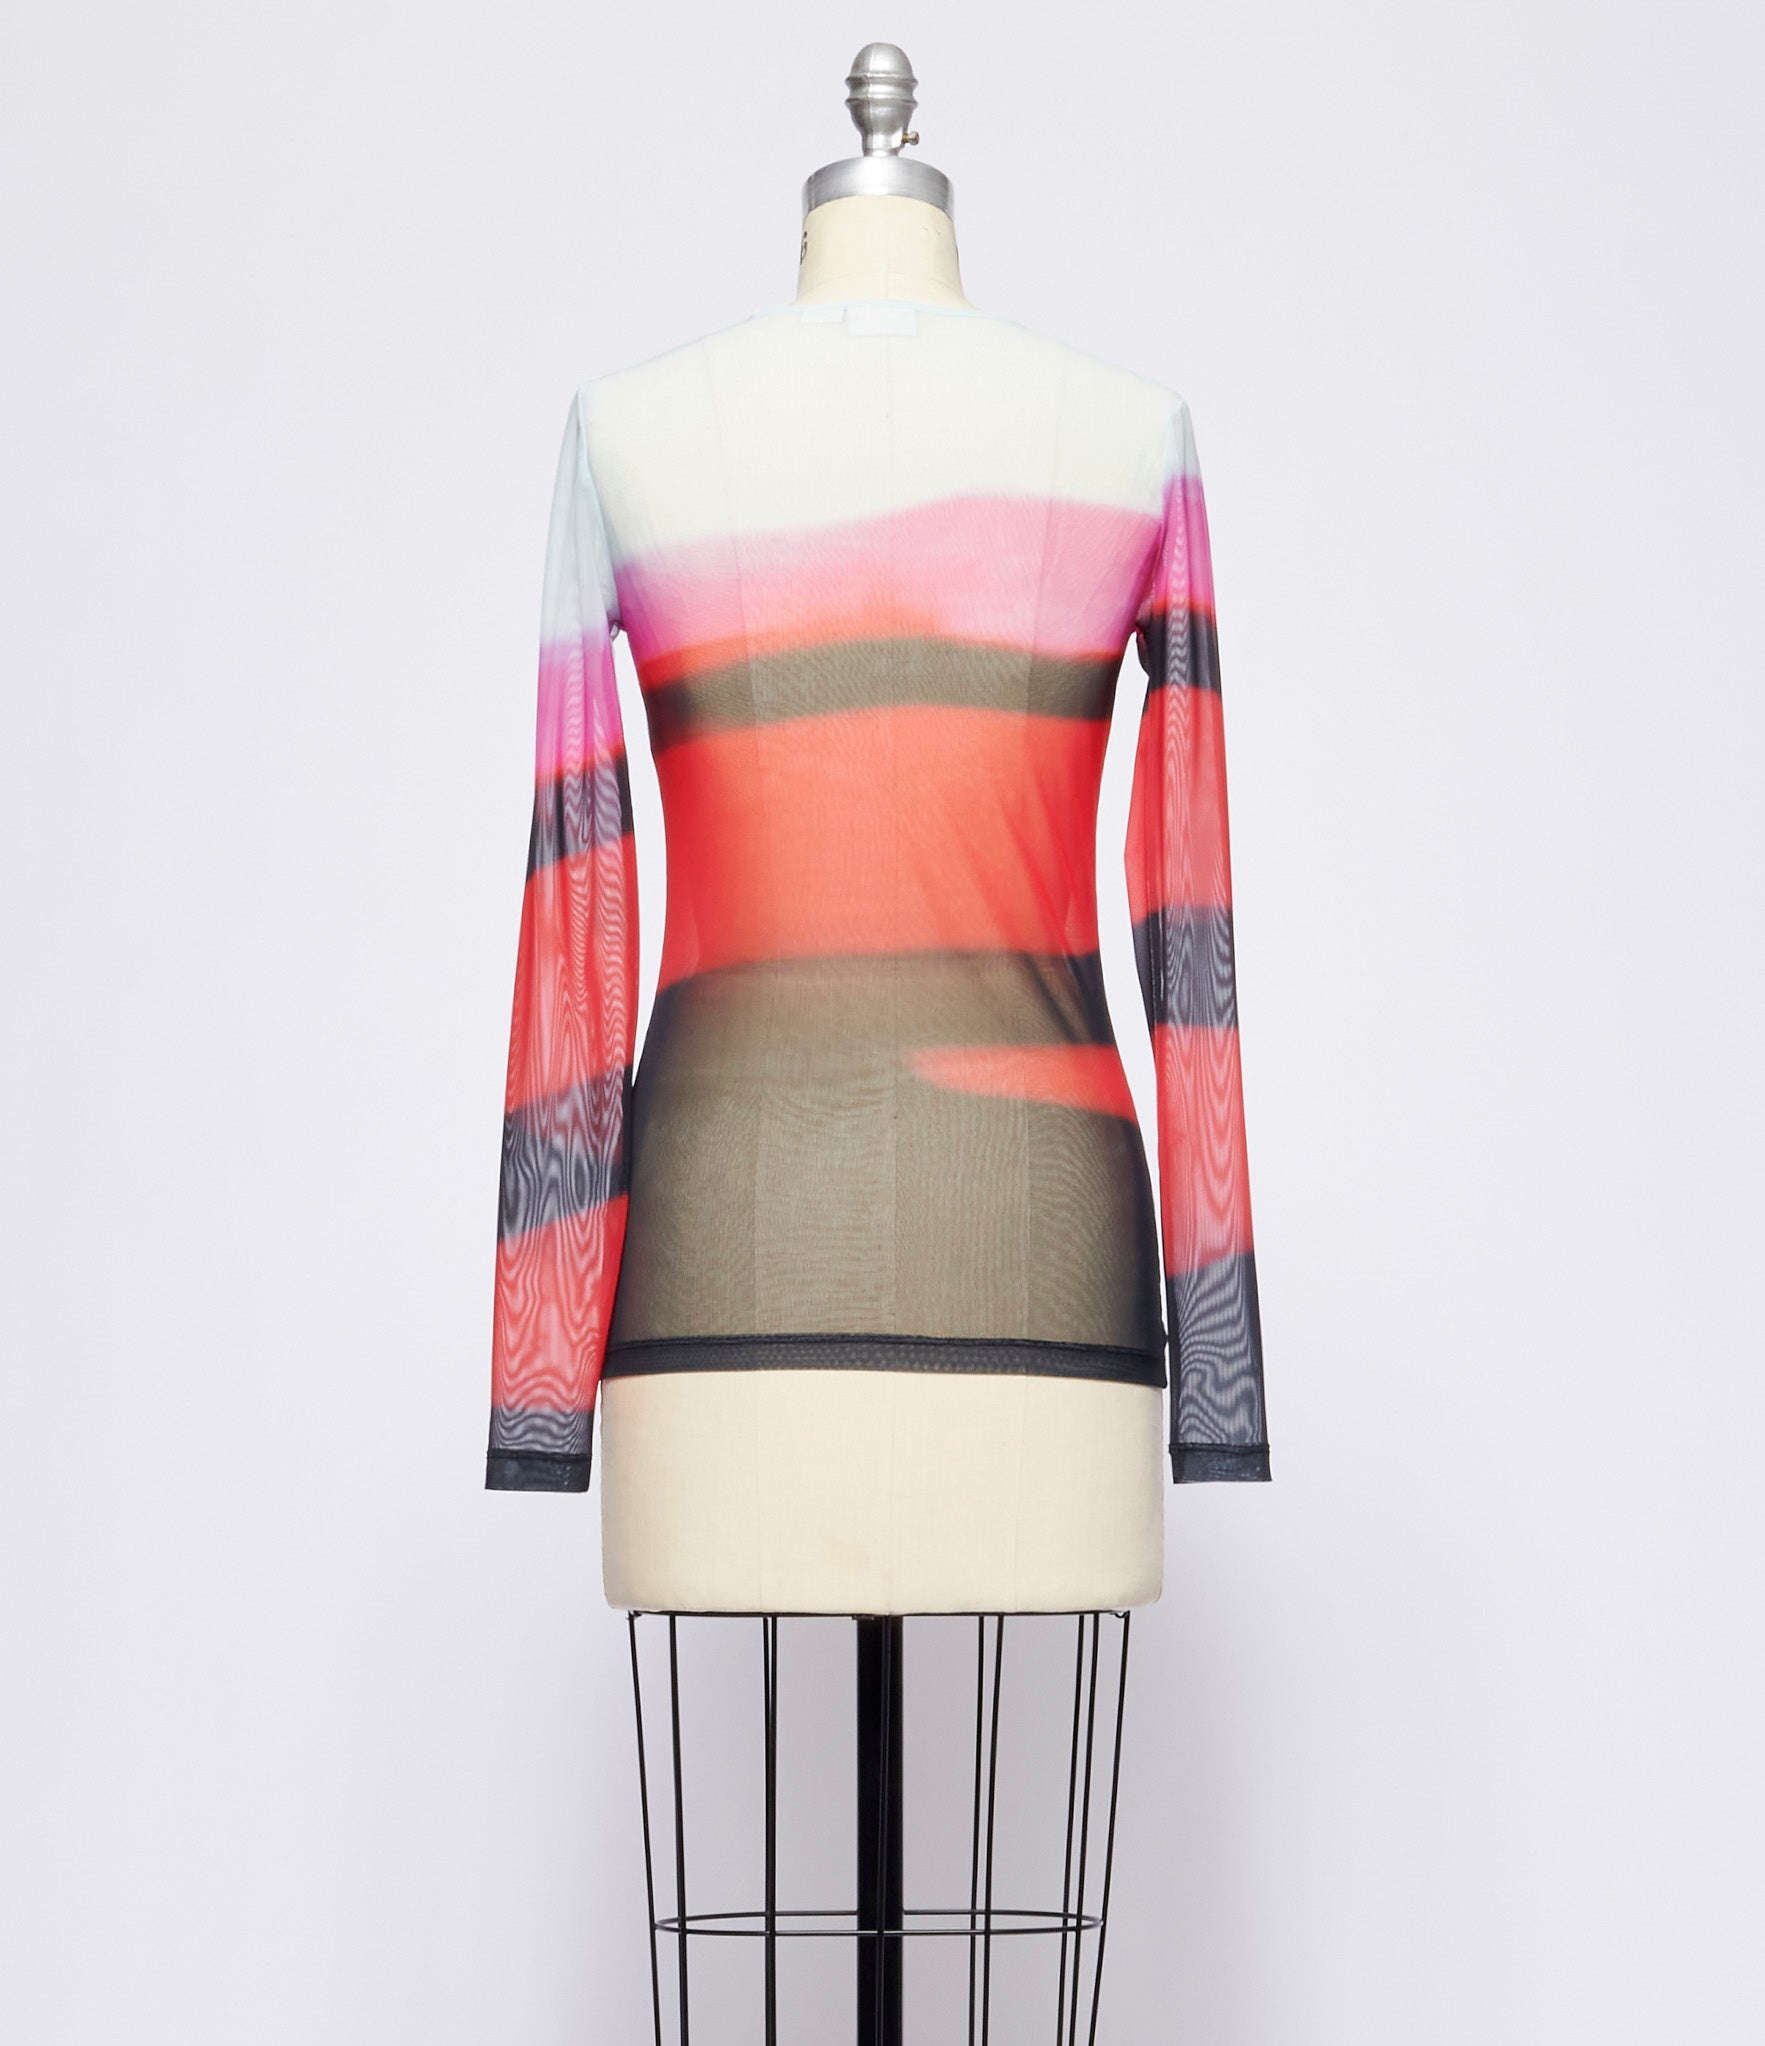 Dries Van Noten Haste Mesh Top